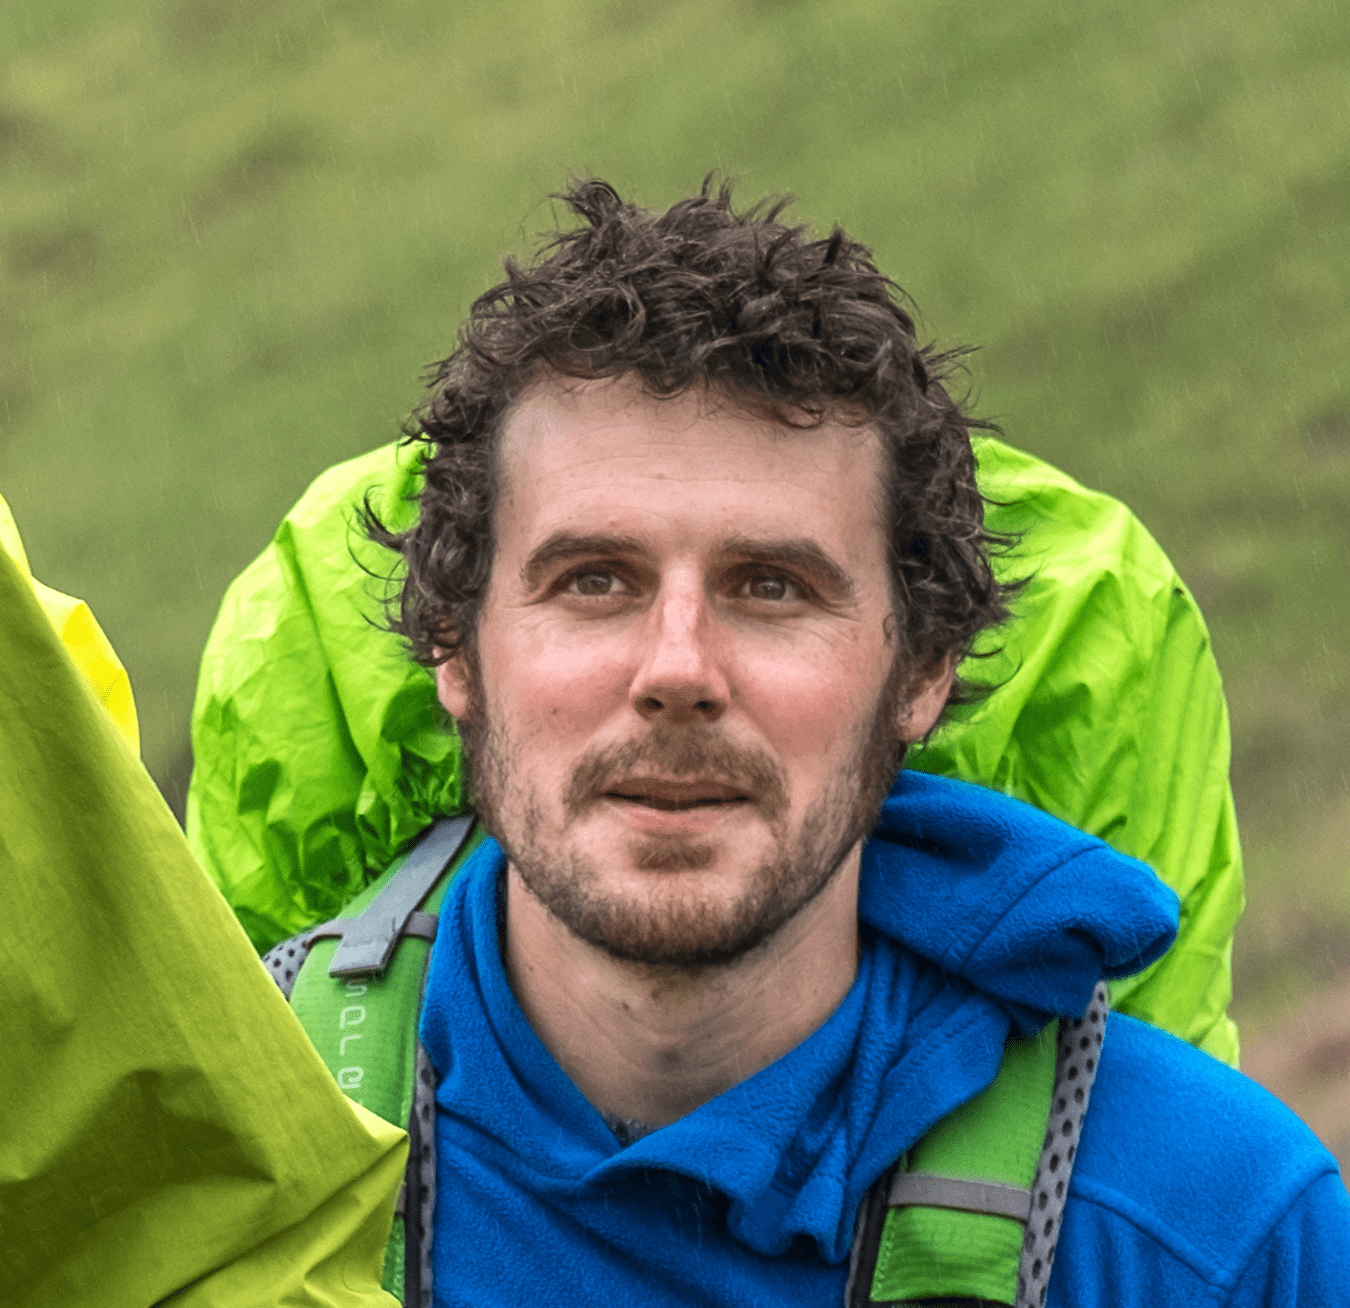 Daniel Graham of BBC Countryfile Magazine on a hike with wet hair and blue coat and hills in background